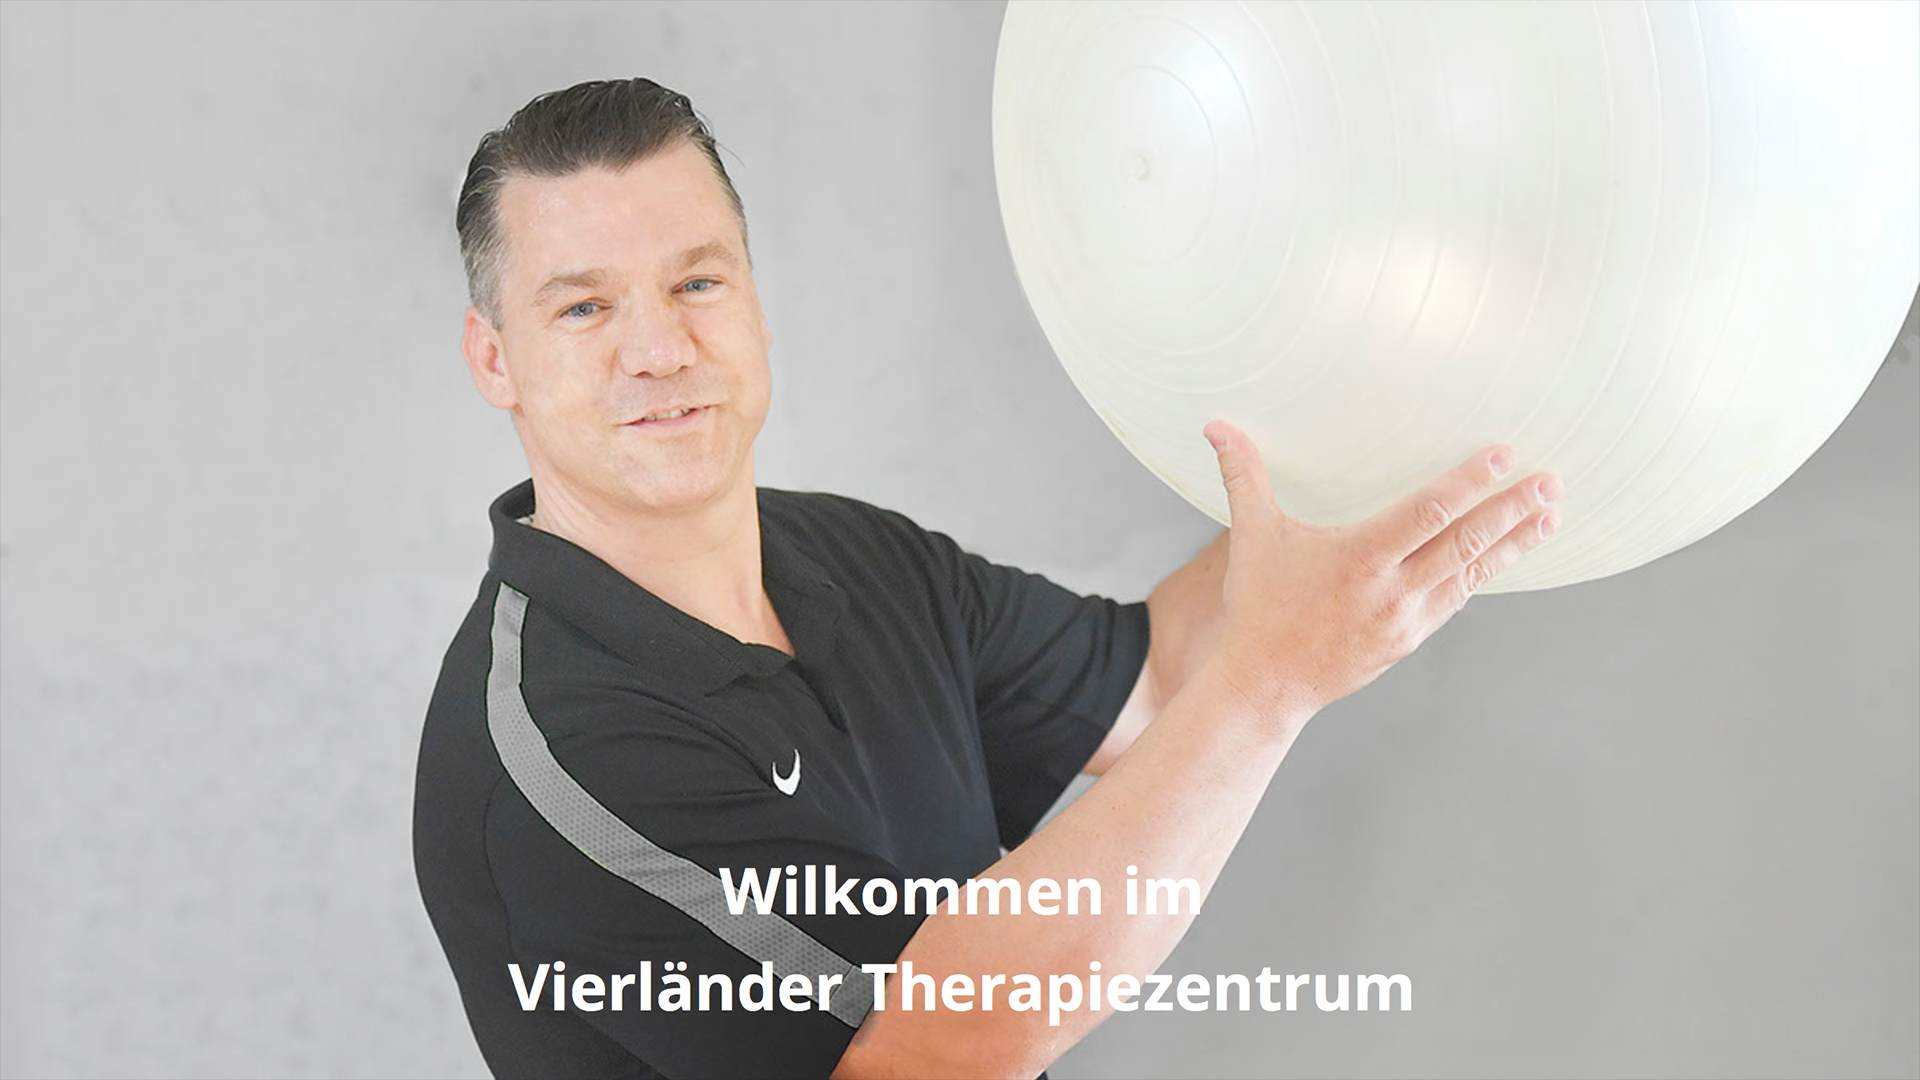 Vierländer Therapiezentrum  Titelbild